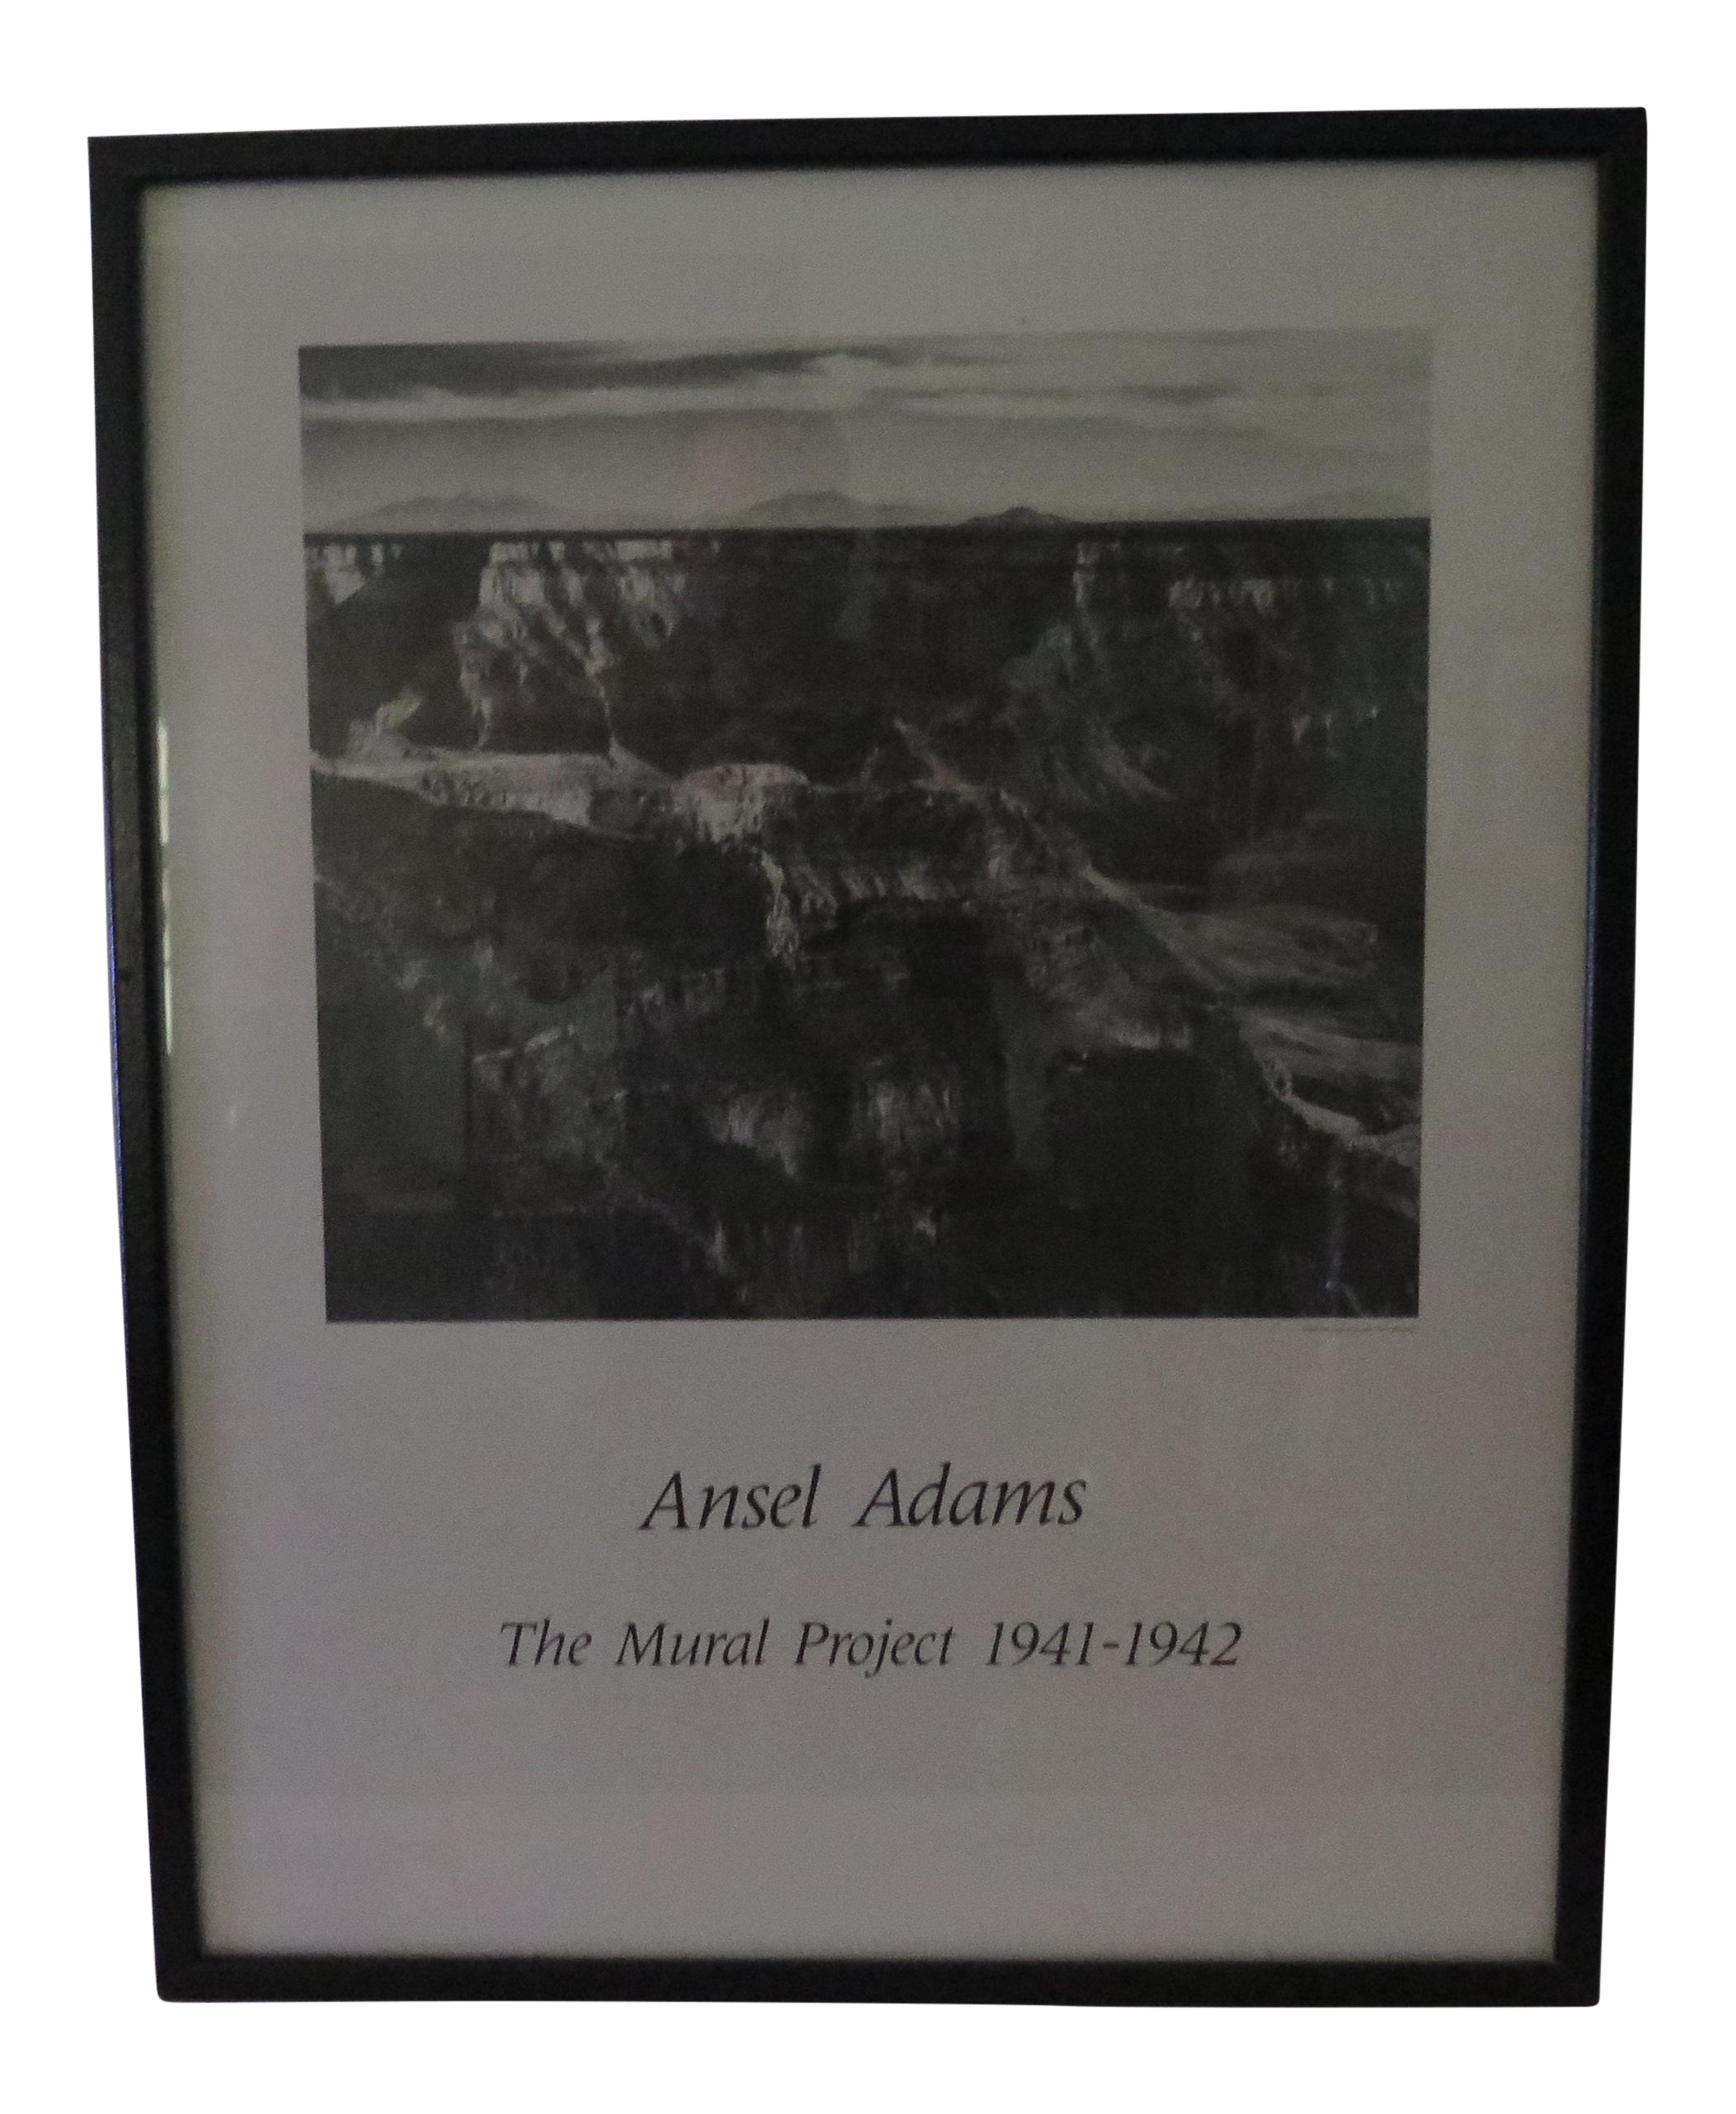 Vintage ansel adams mural project poster chairish for Ansel adams the mural project posters